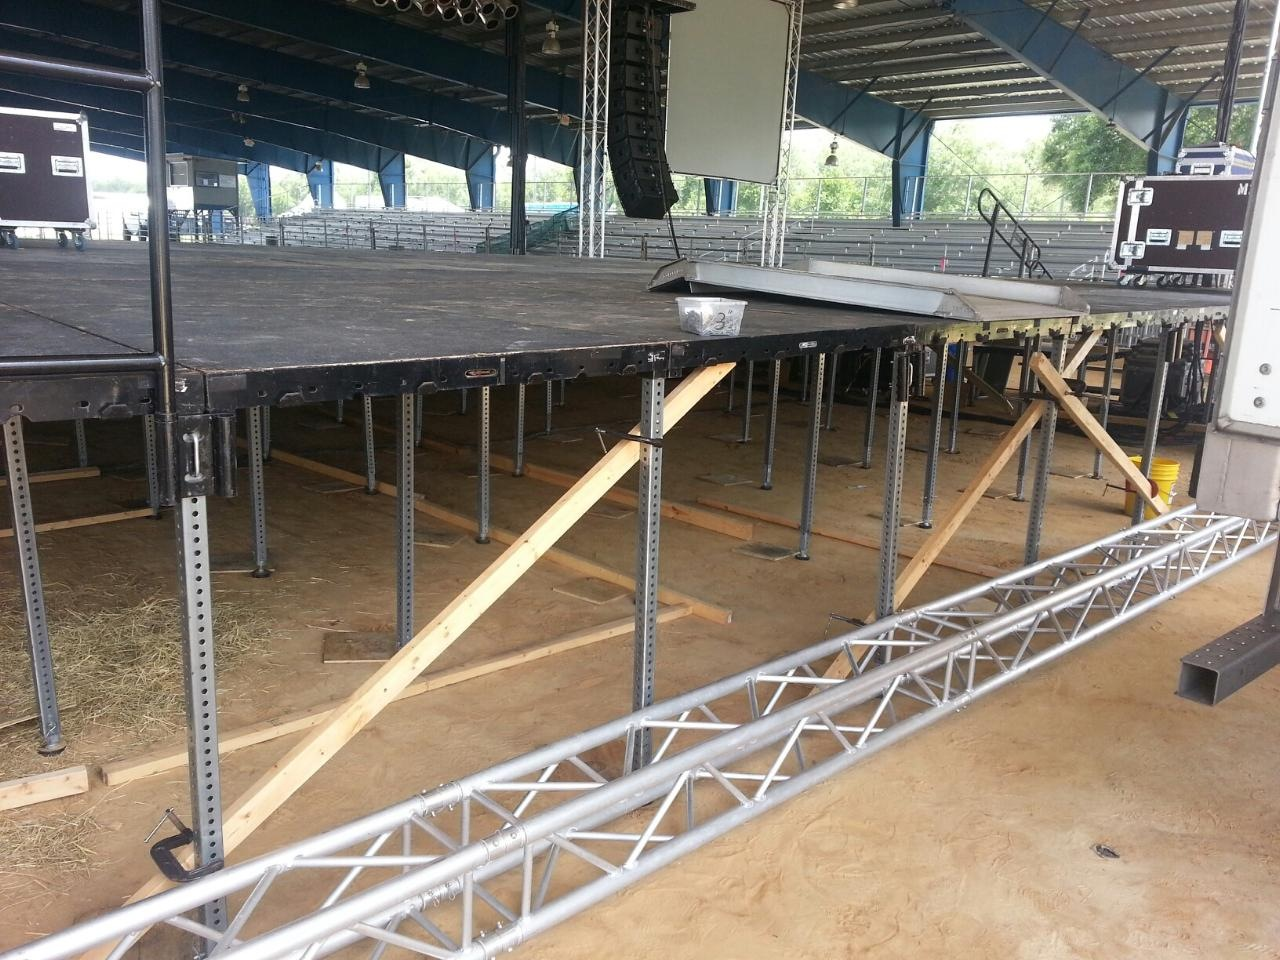 Stage Doesn't Collapse – But It Could Have